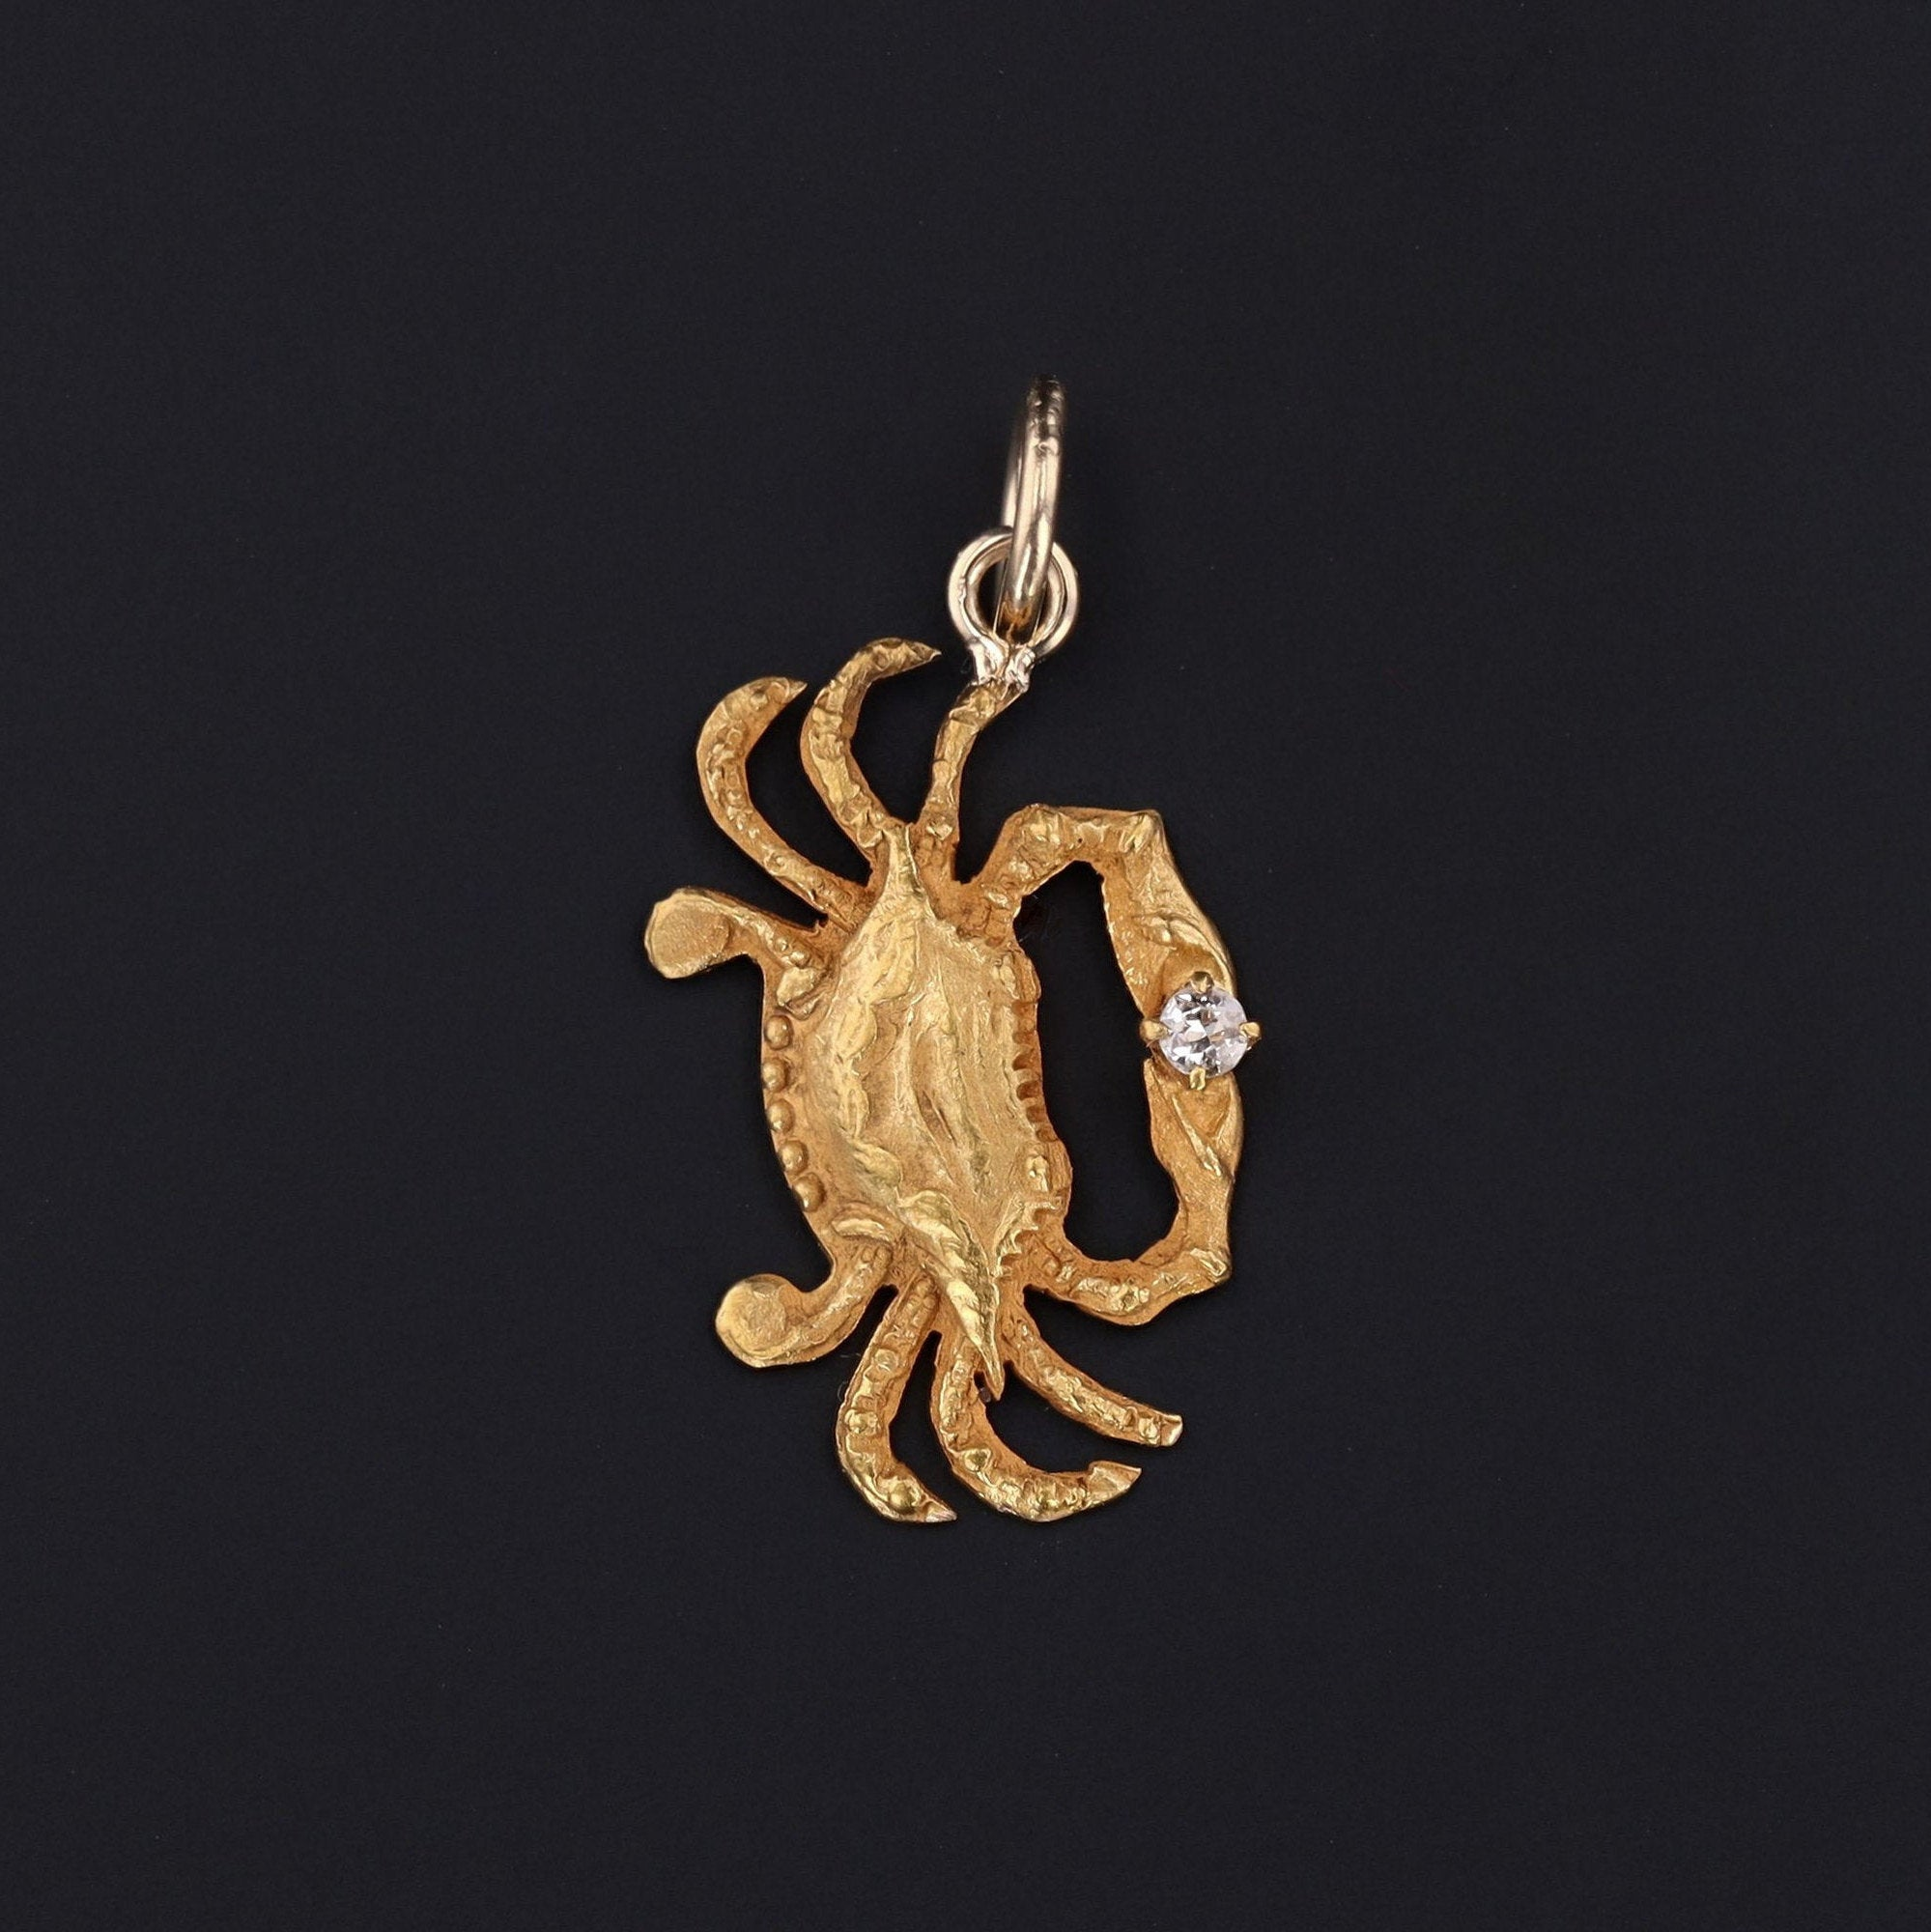 Crab Charm | 14k Gold Crab | Diamond Crab Charm | Antique Pin Conversion | Cancer Zodiac Charm | Gold Charm